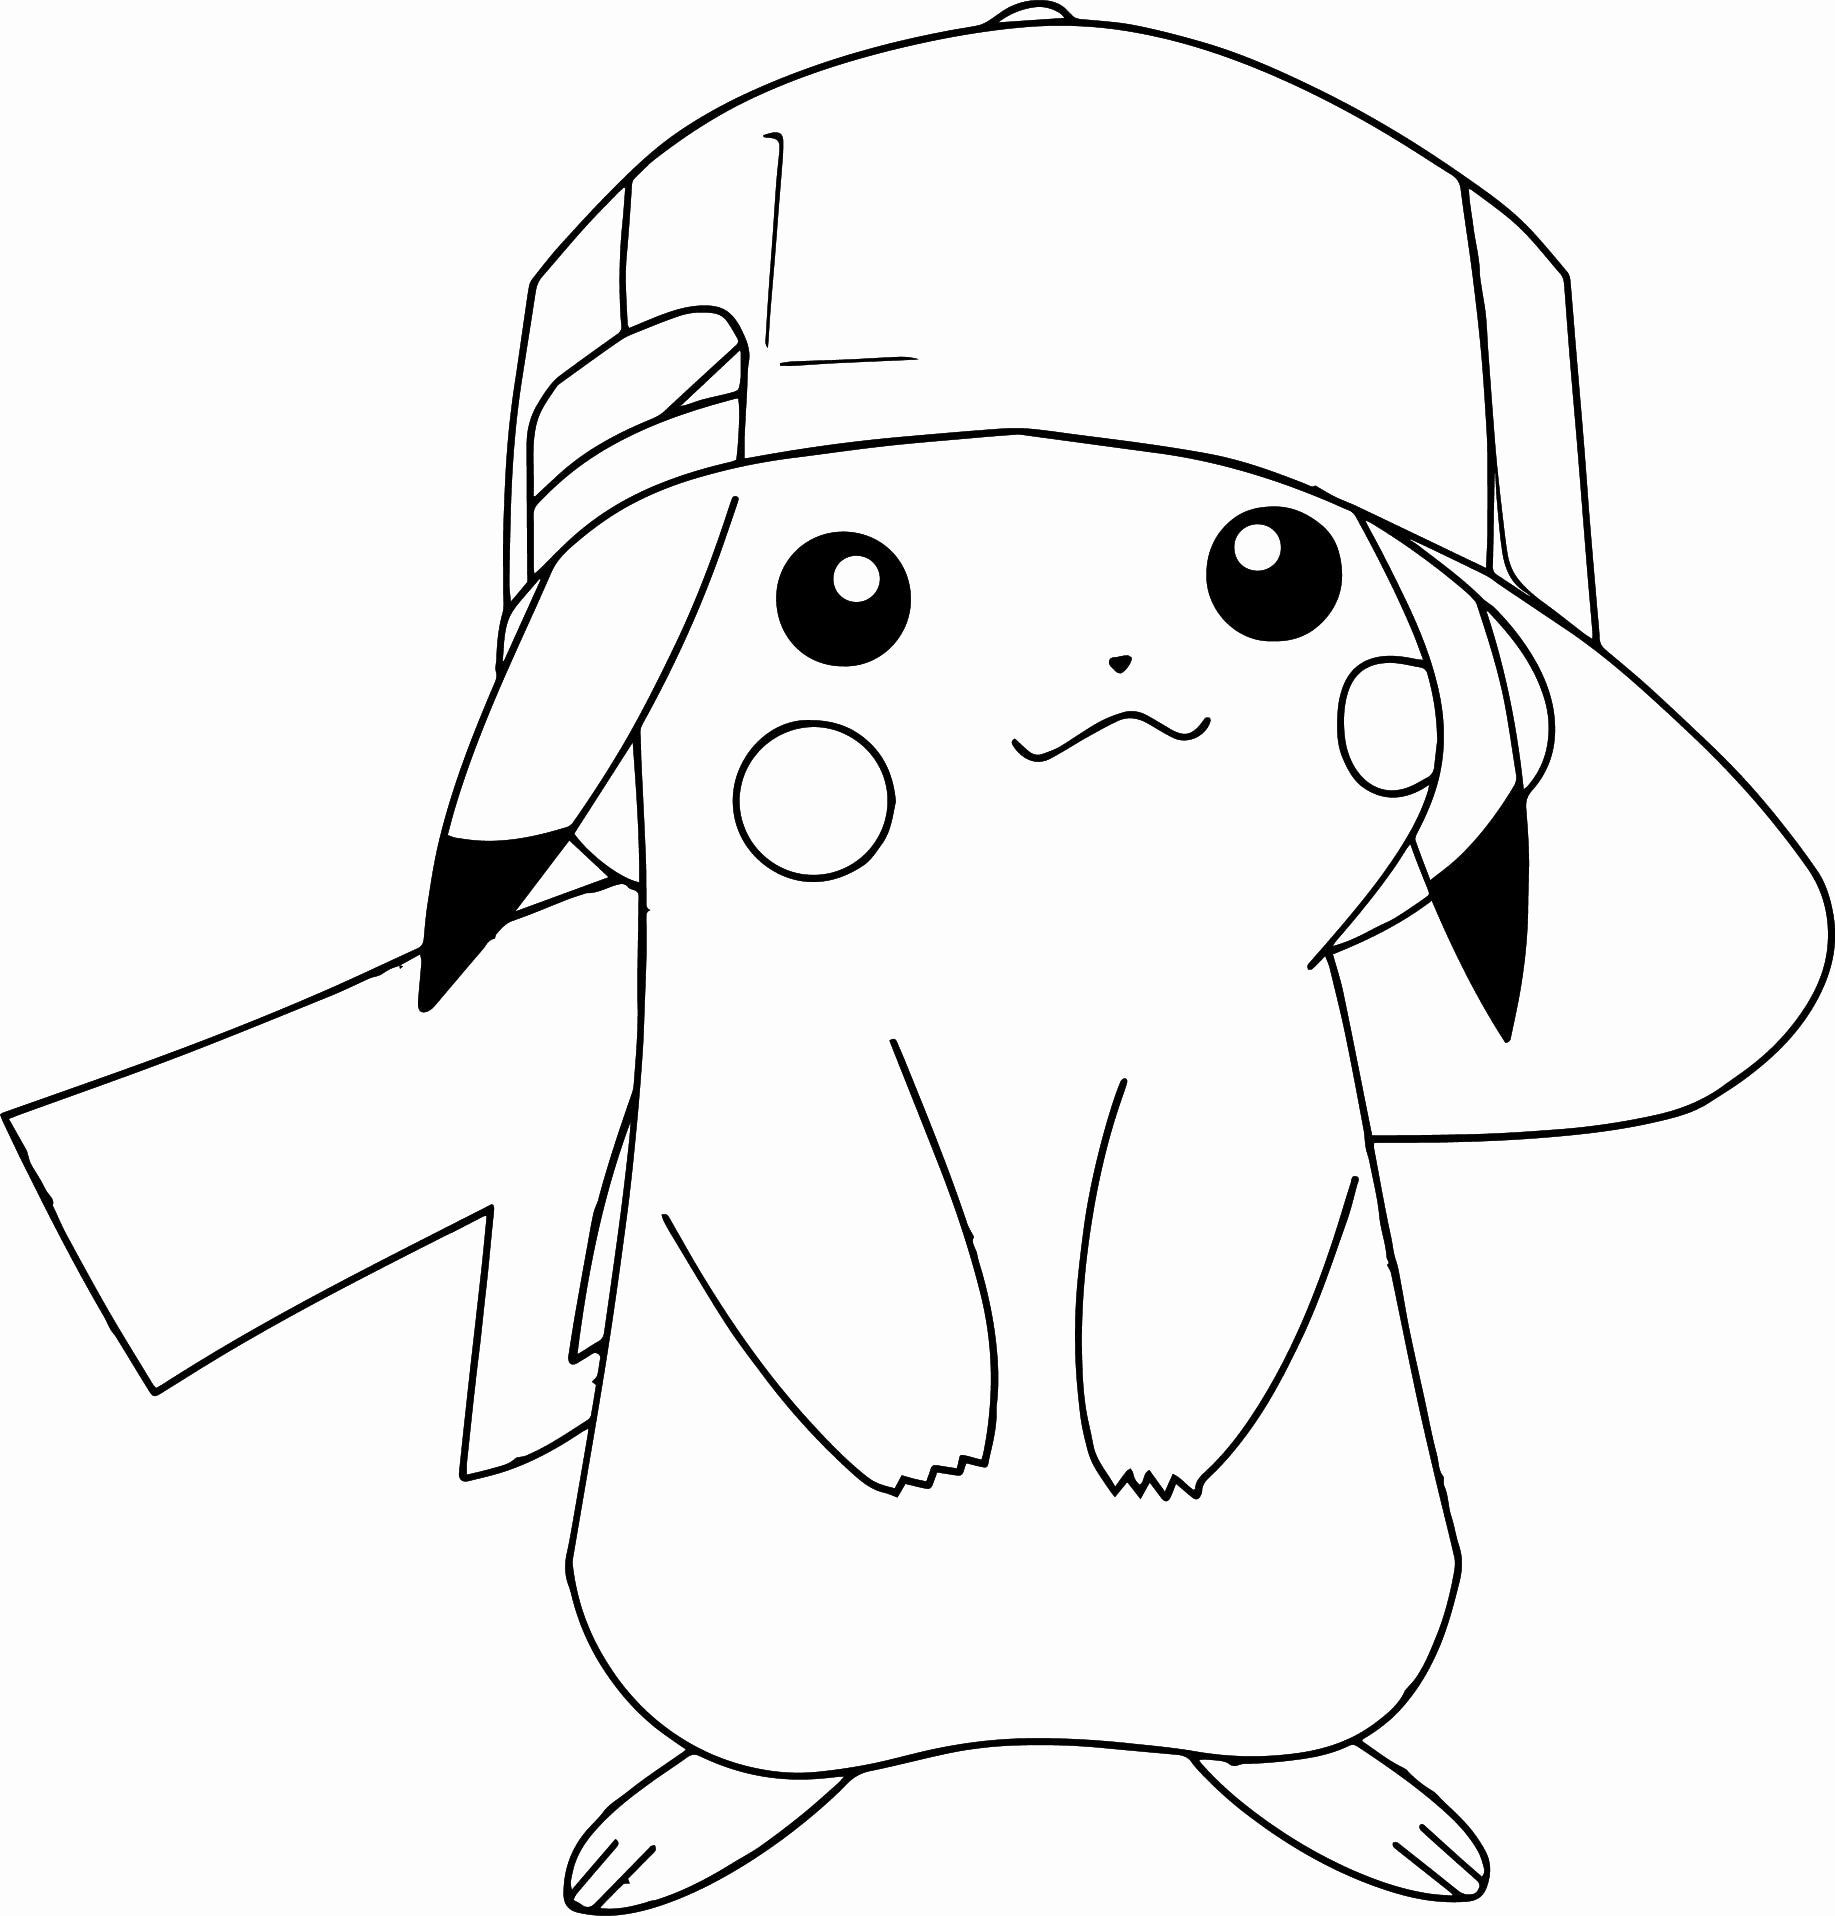 Pokemon Coloring Pages Printable Pokemon Coloring Pages Pikachu